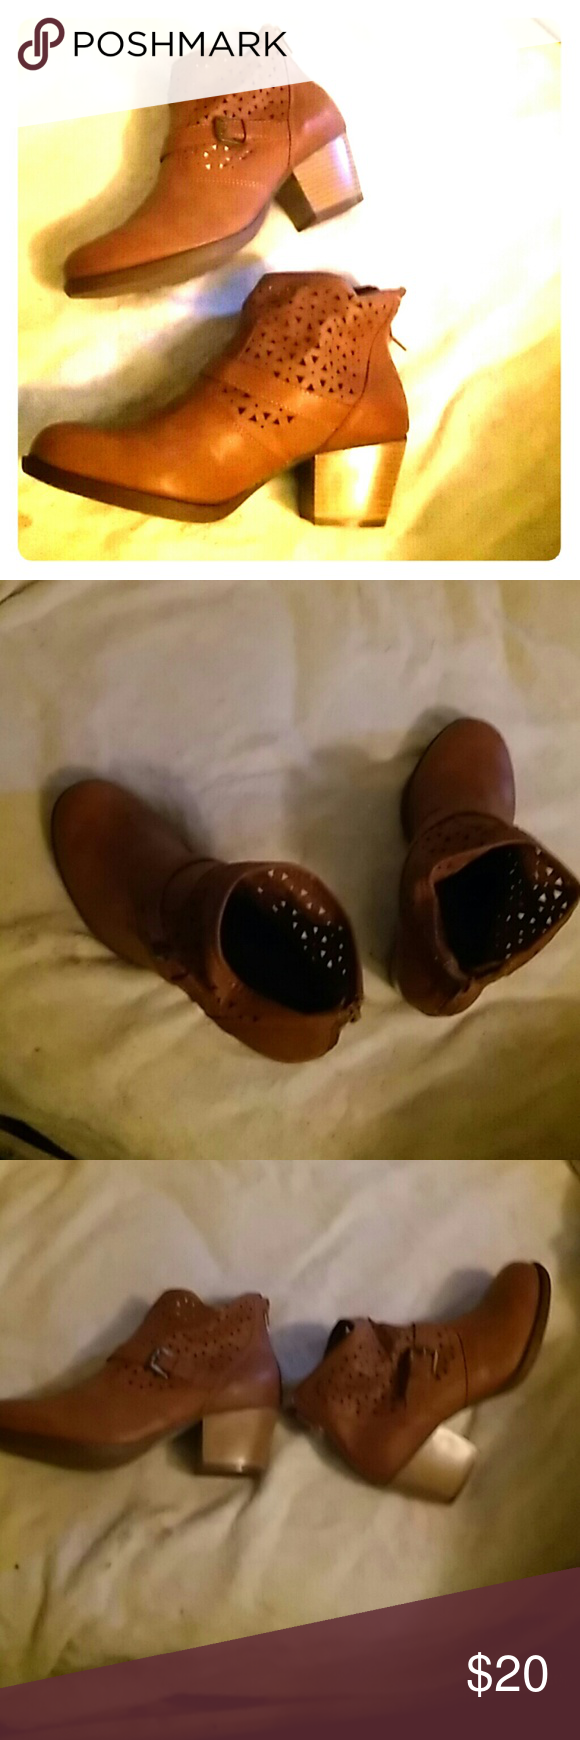 Brown ankle boots Never worn cute boots Sonoma Shoes Heeled Boots